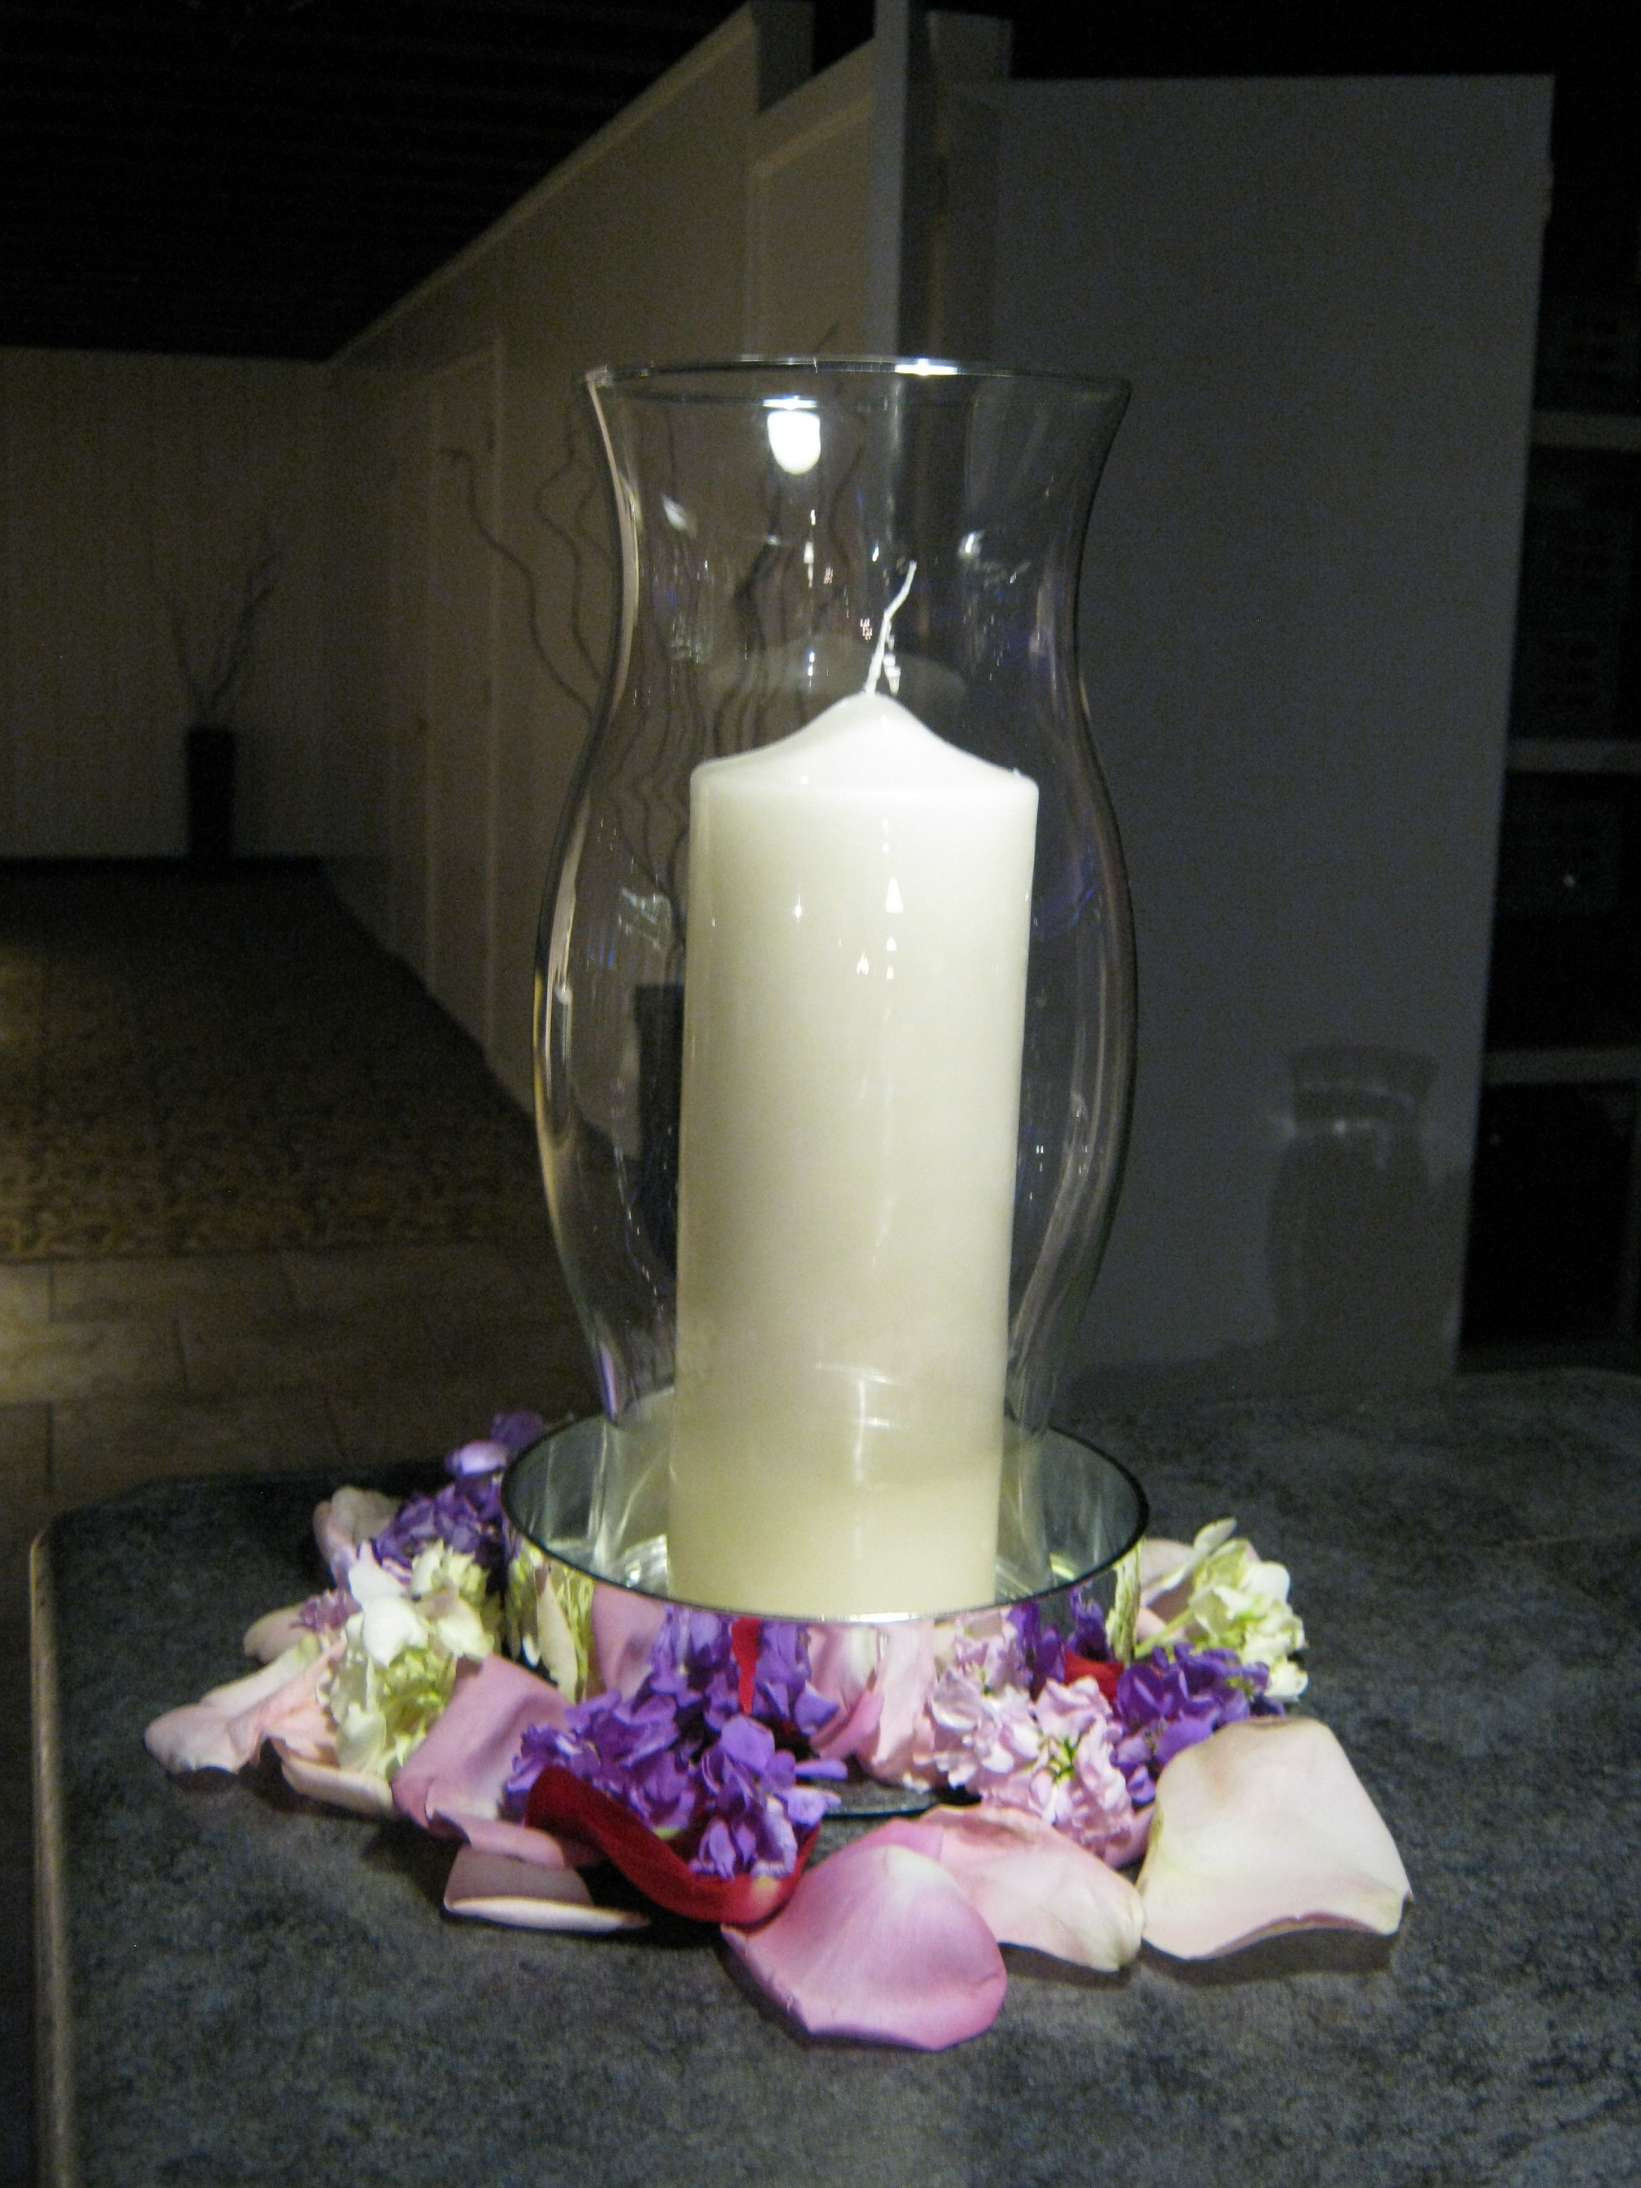 Decorating Ideas for Hurricane Vases Of Large Hurricane Vase Inspirational since Hurricane Vase with Candle with Regard to Large Hurricane Vase Inspirational since Hurricane Vase with Candle and Flowers at the Base